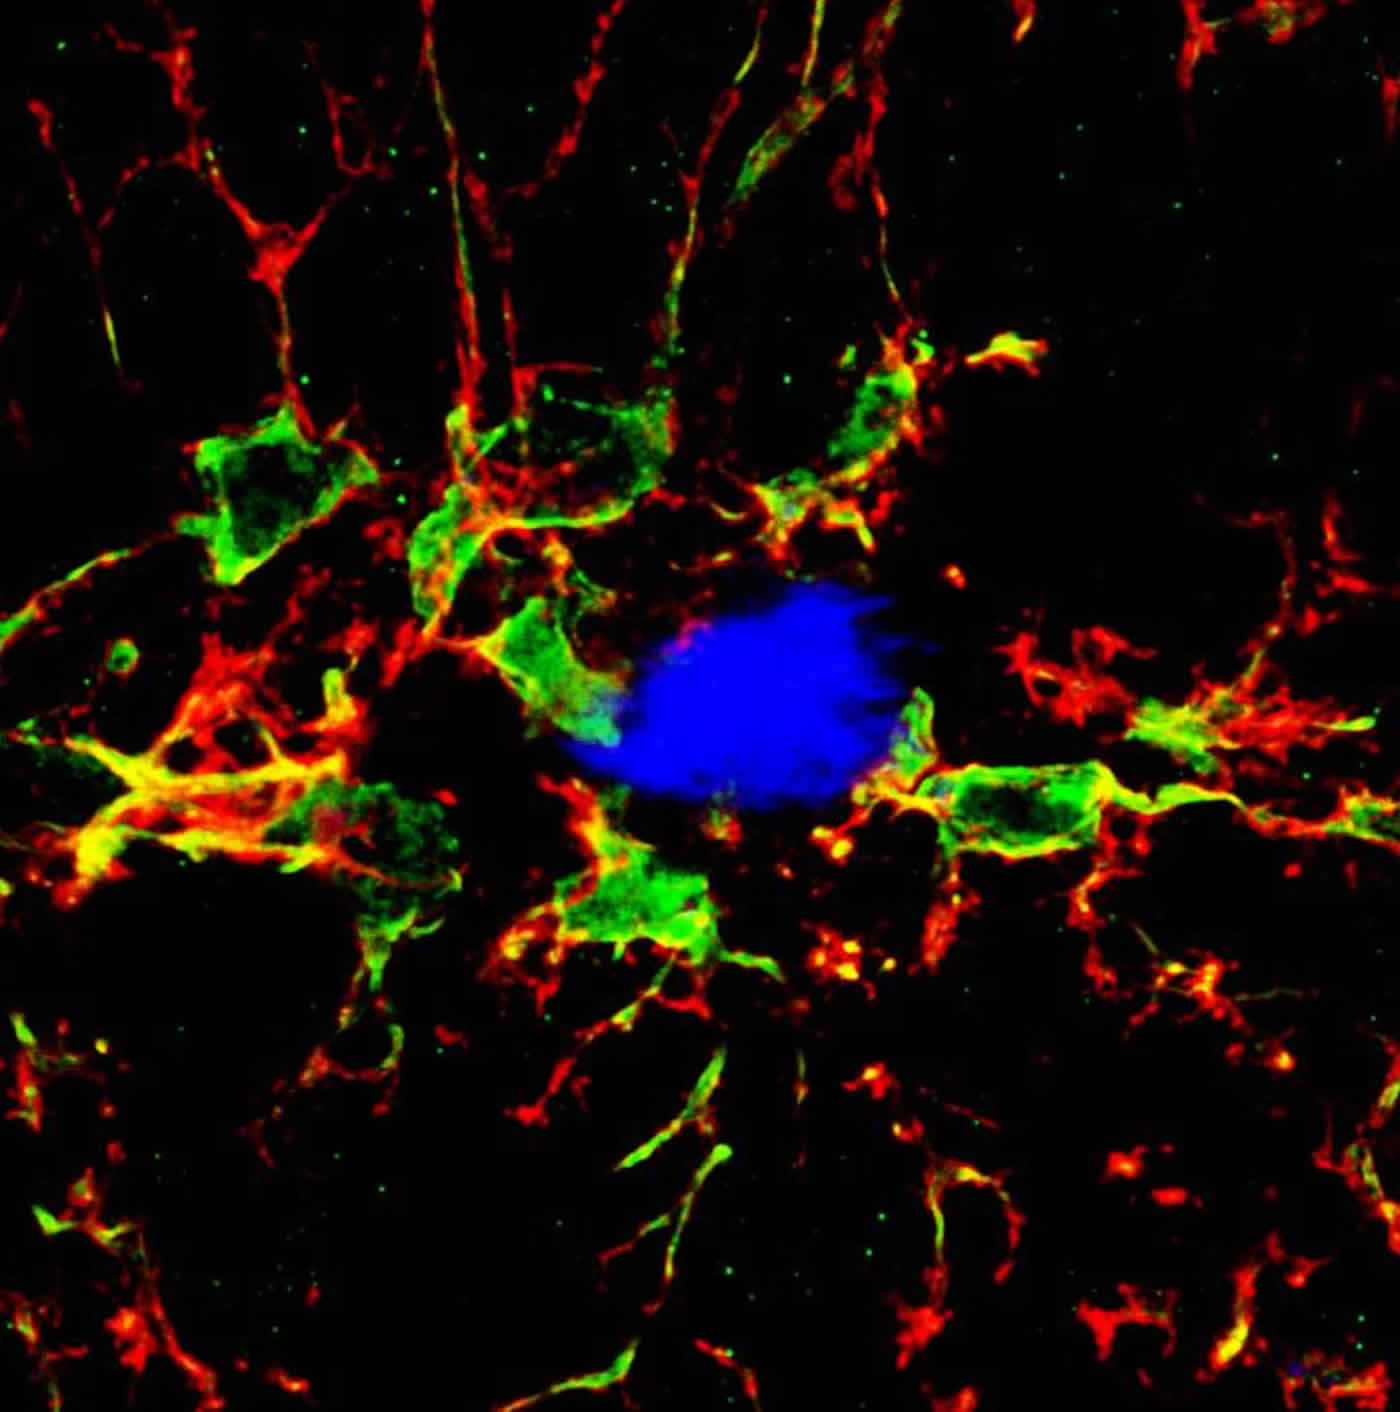 Image shows microglia and amyloid plaques in the brain of an Alzheimer's mouse model.